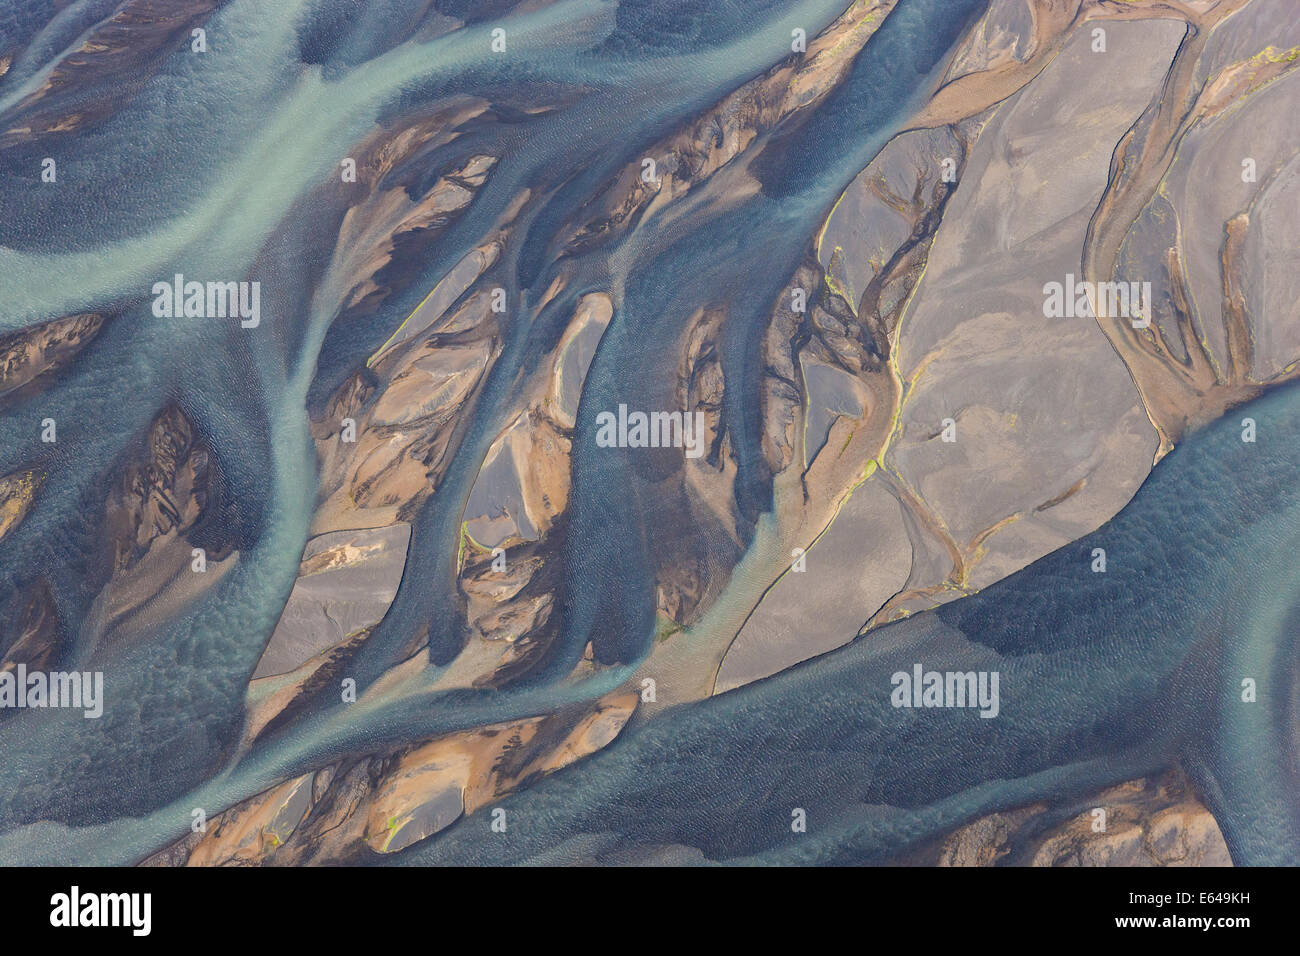 Aerial view of Hosa river coloured by glacial melt, SW Iceland Stock Photo